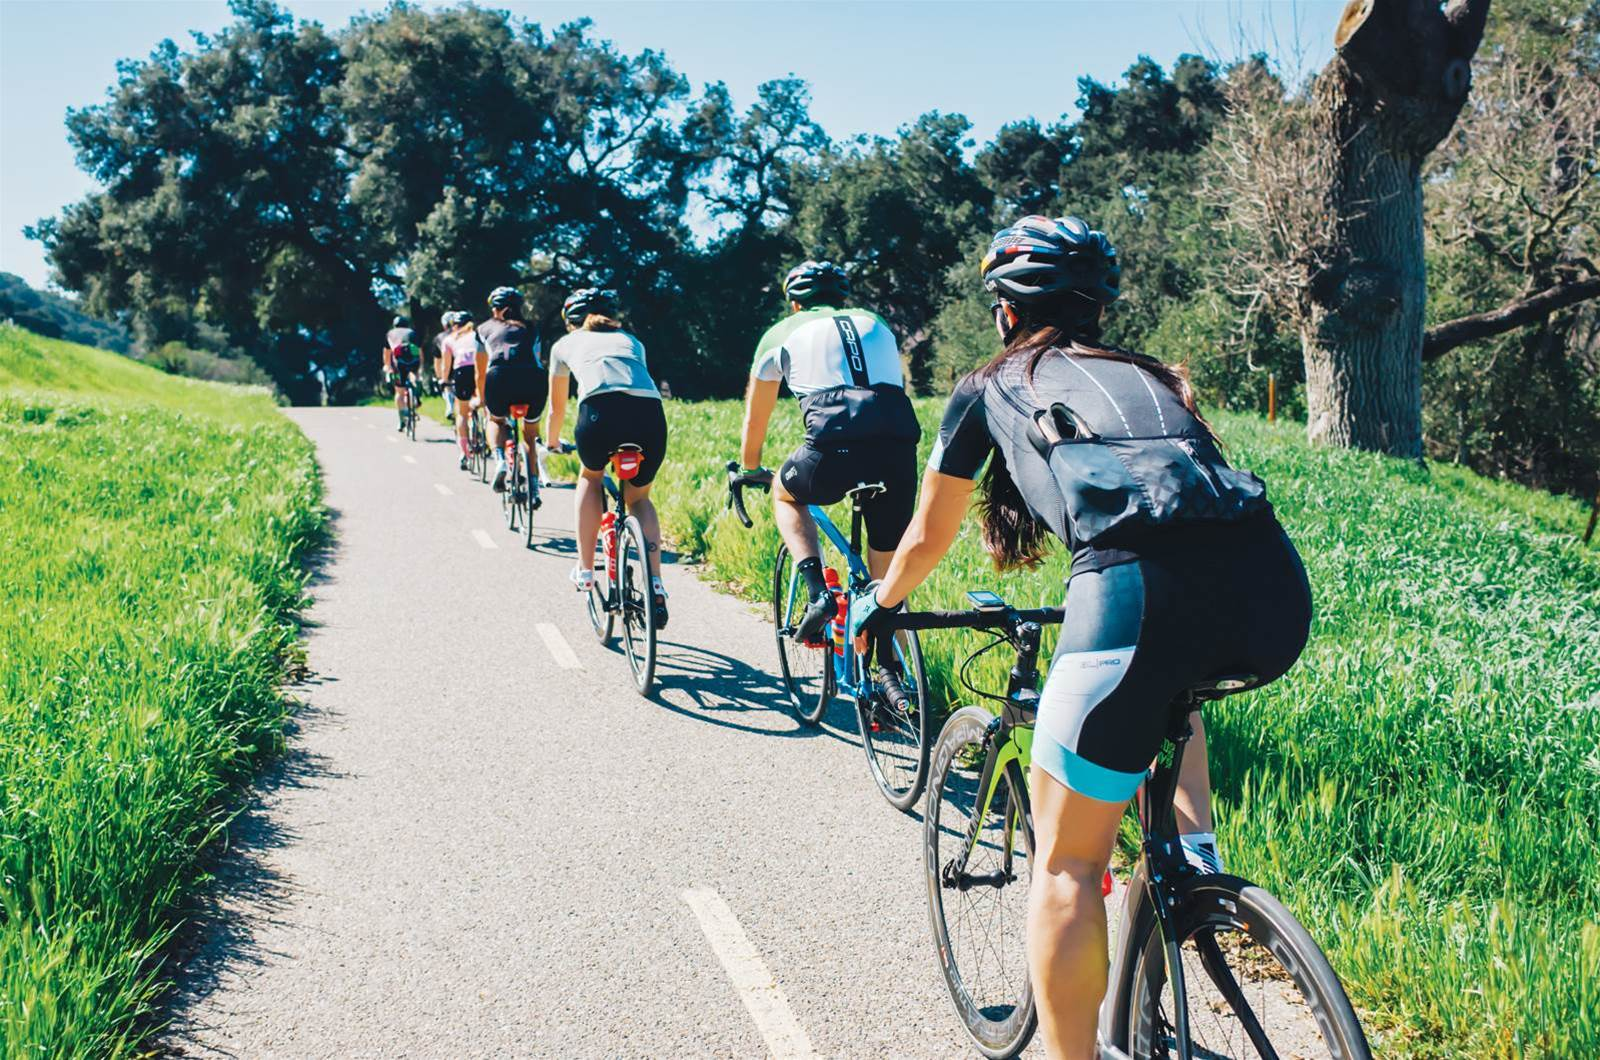 5 ways to find the group ride of your dreams